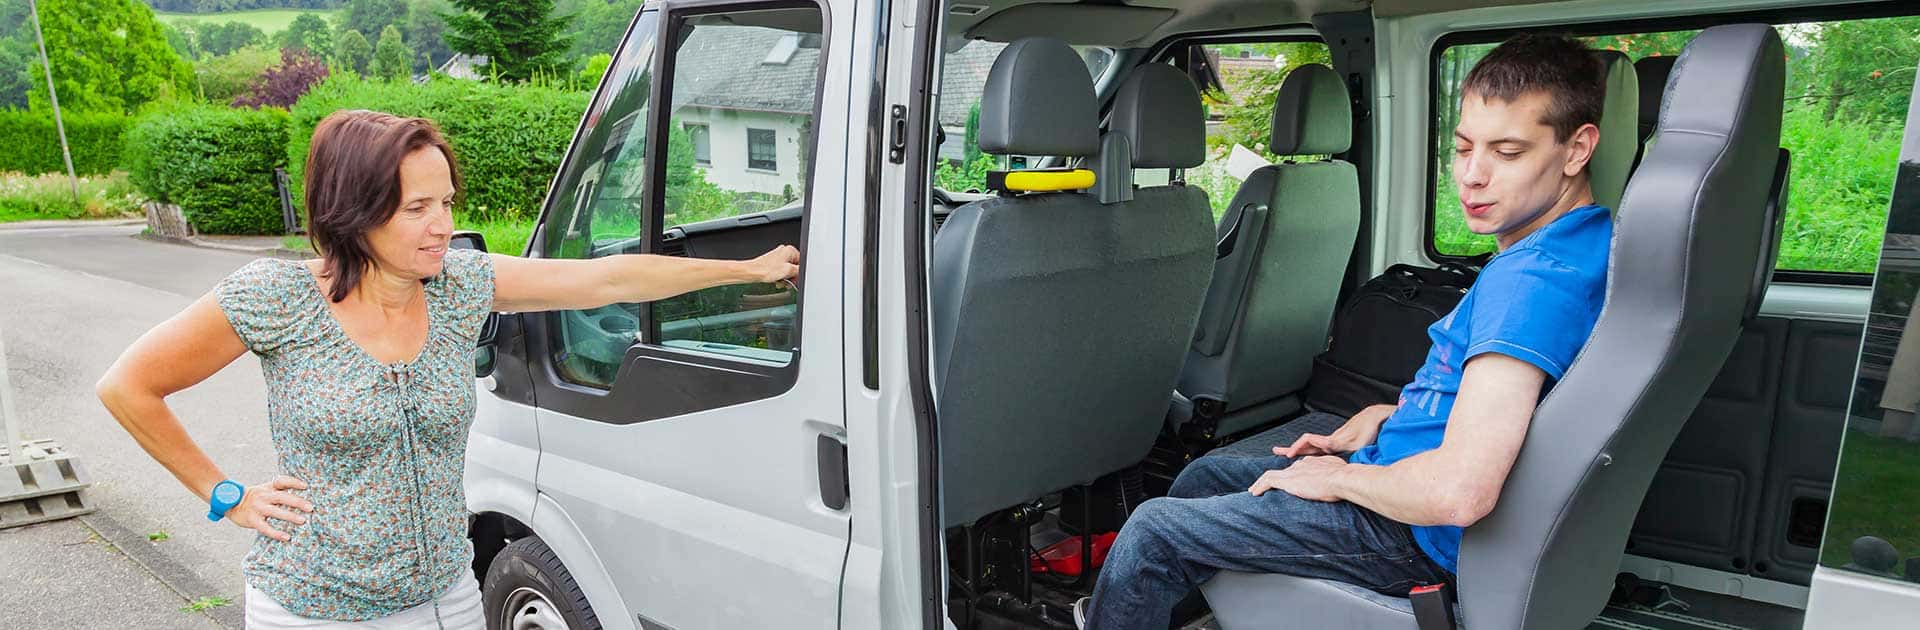 Disabled teenager sitting in van